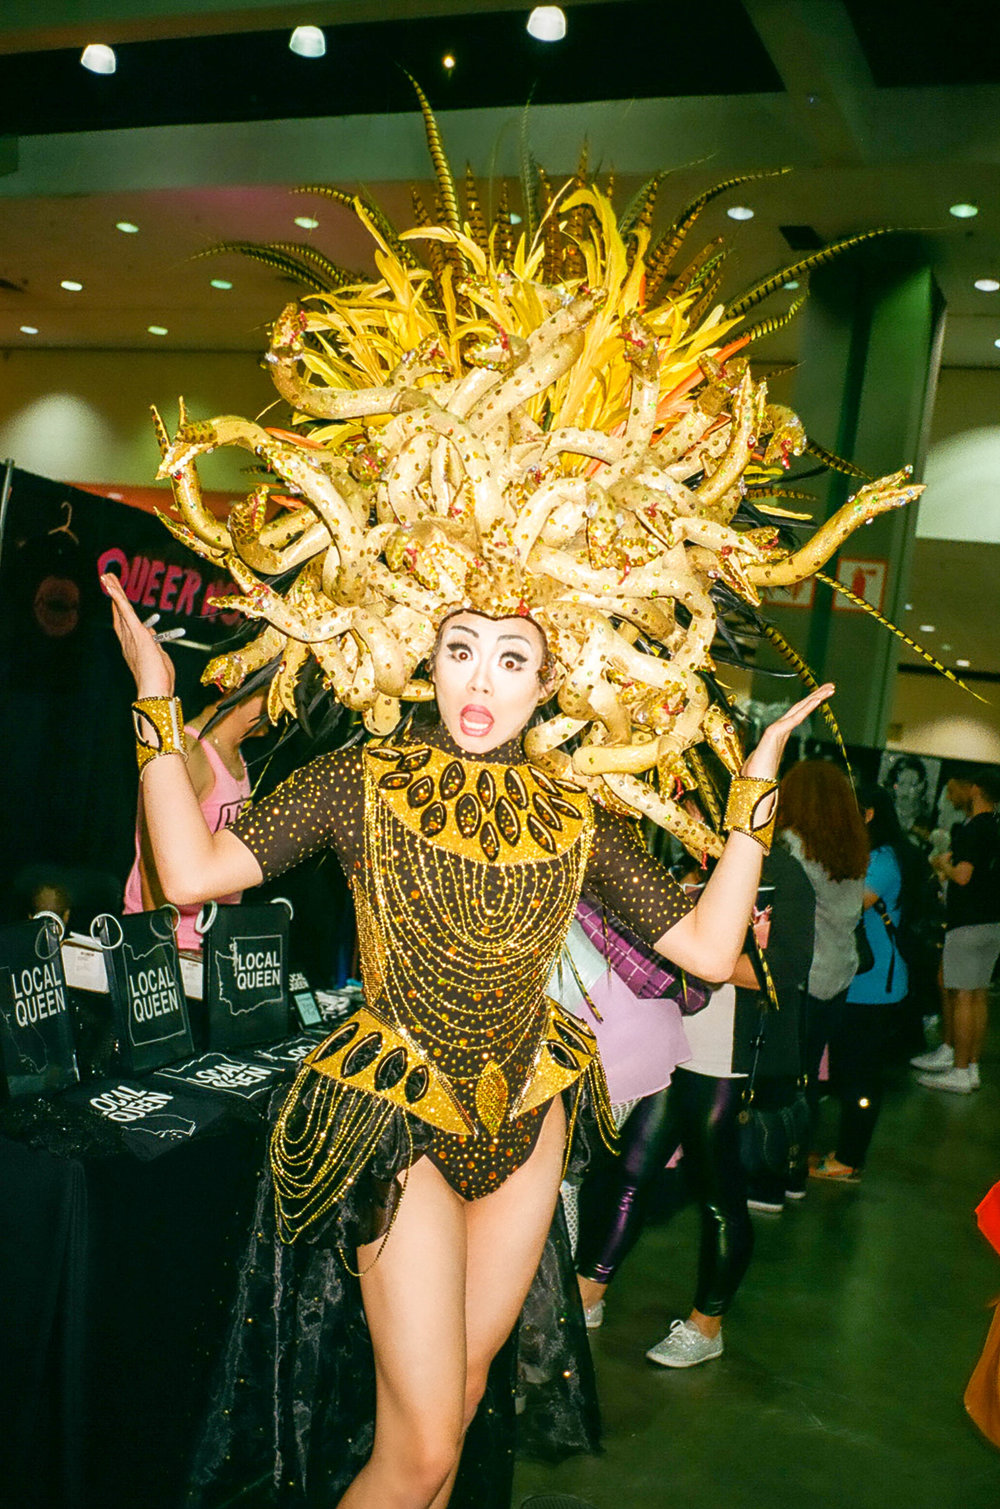 Dragcon_DavidVassalli_April2017_Film-83.jpg